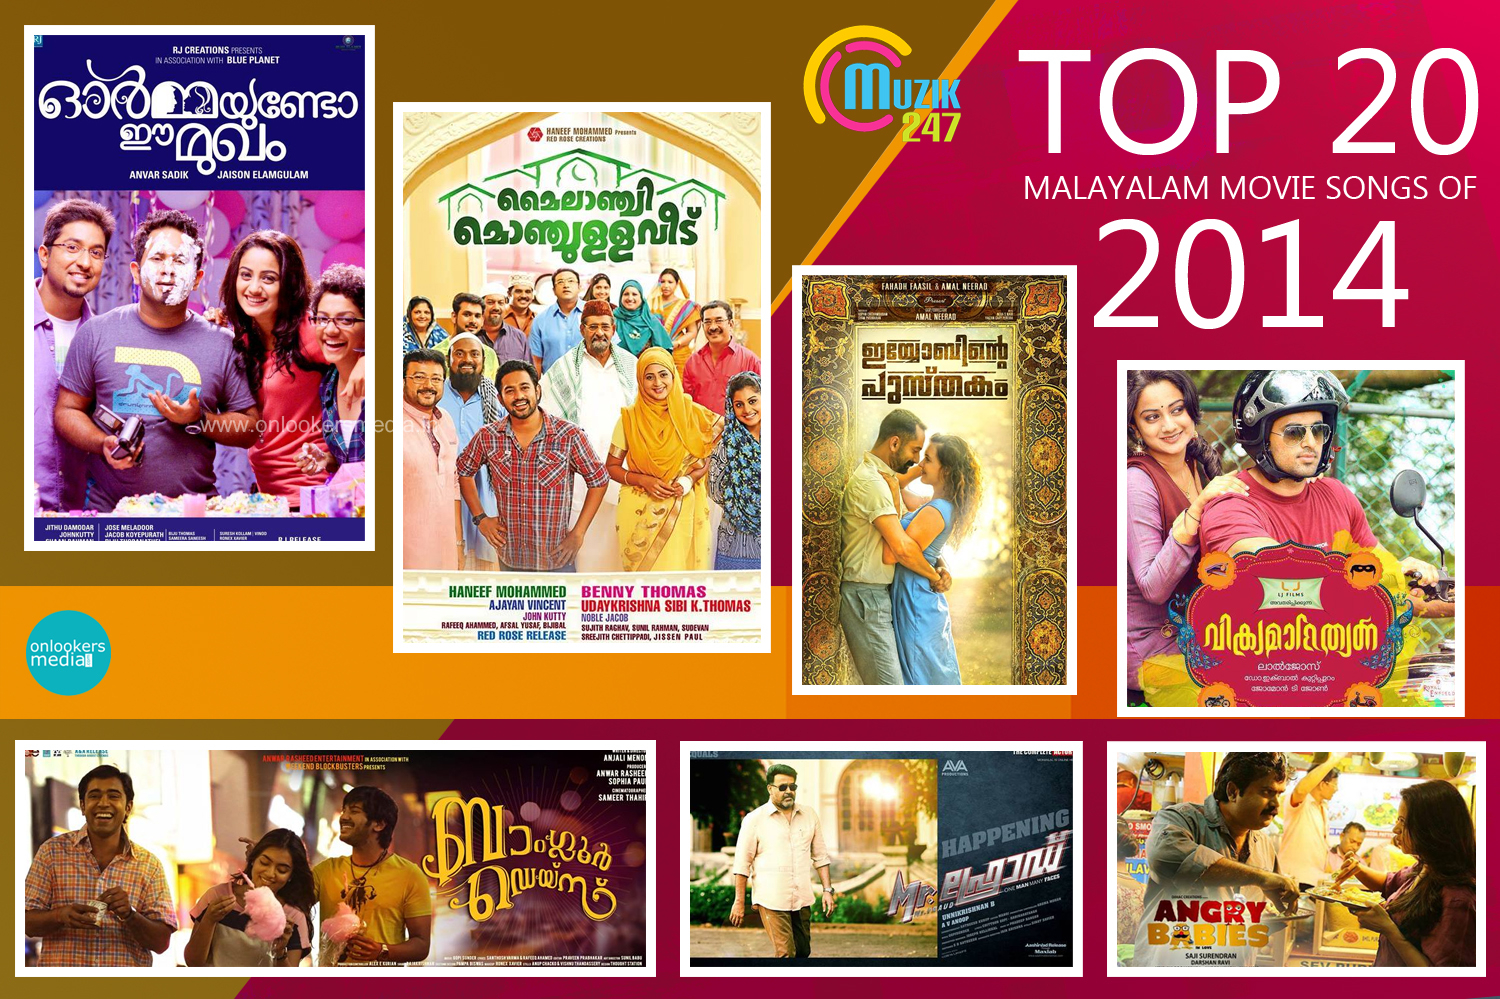 Top 20 Malayalam movie songs of 2014-Ormayundo Ee Mukham-Iyyobinte Pusthakam-Vikramadithyan-Mr Fraud-Angry Babies-Sapthamasree Thaskaraha-Onlookers Media